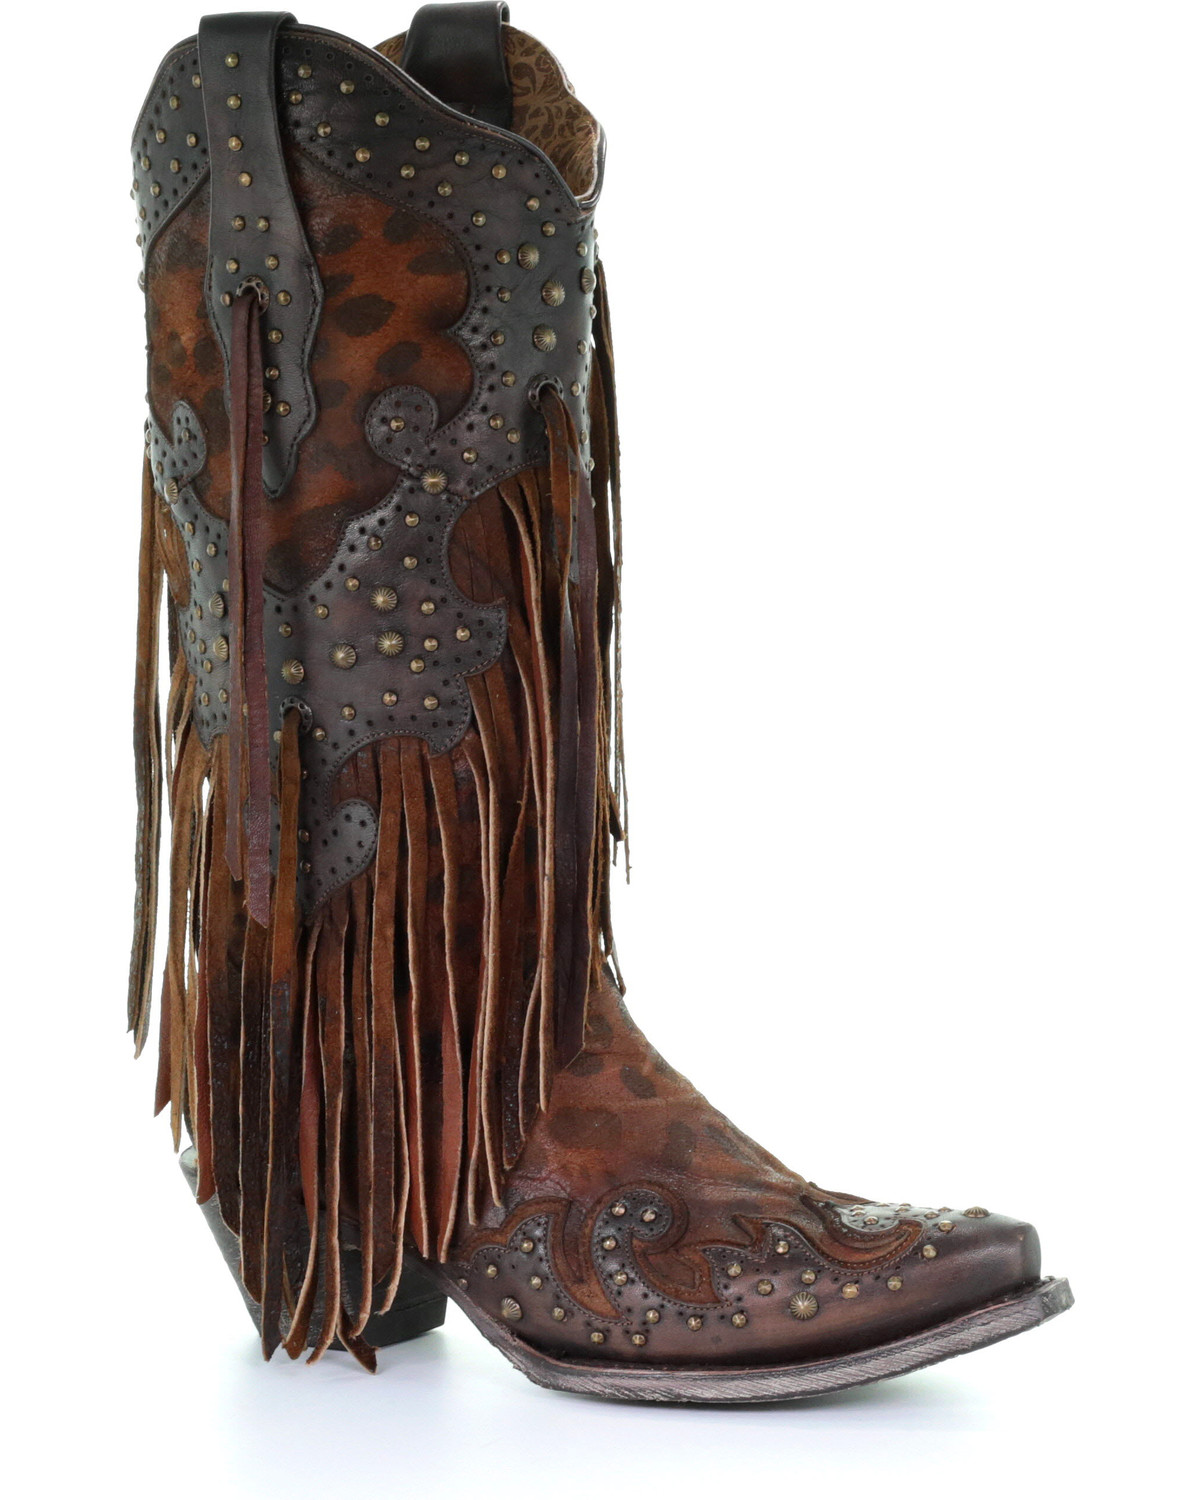 Corral Women's Studded Fringe Cowgirl Boots Snip Toe